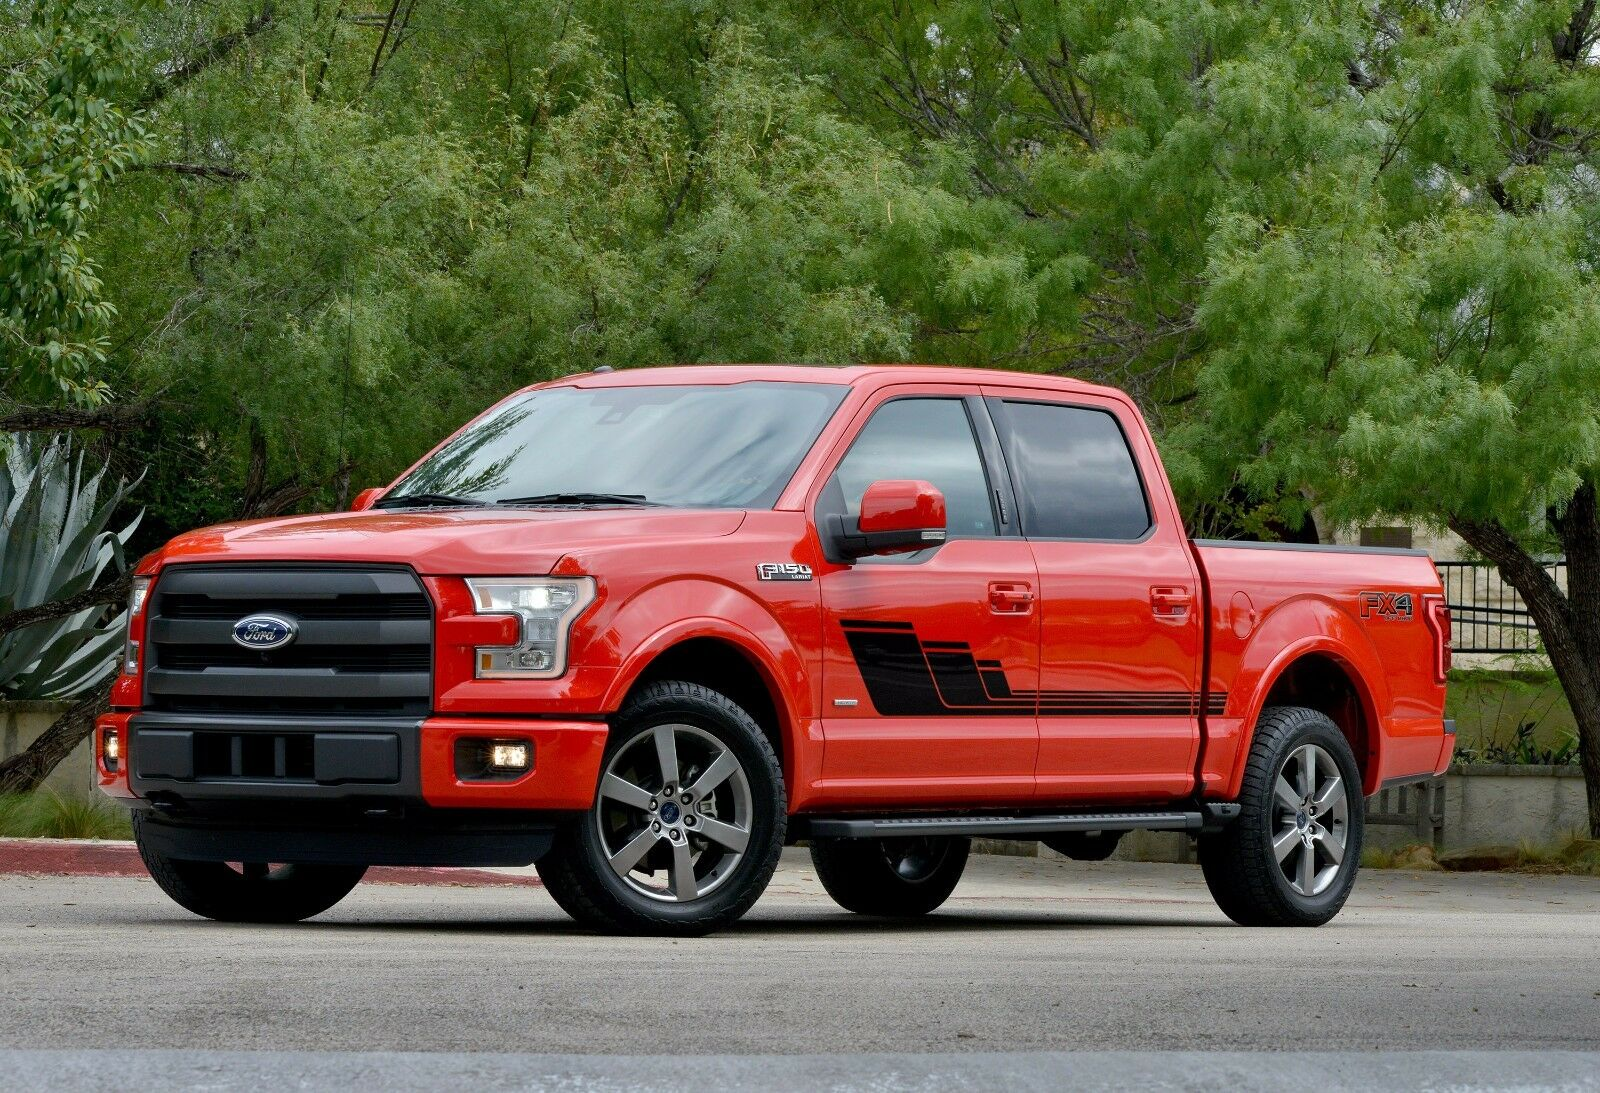 ford f 150 2016 graphics side stripe decal model 1 ebay. Black Bedroom Furniture Sets. Home Design Ideas